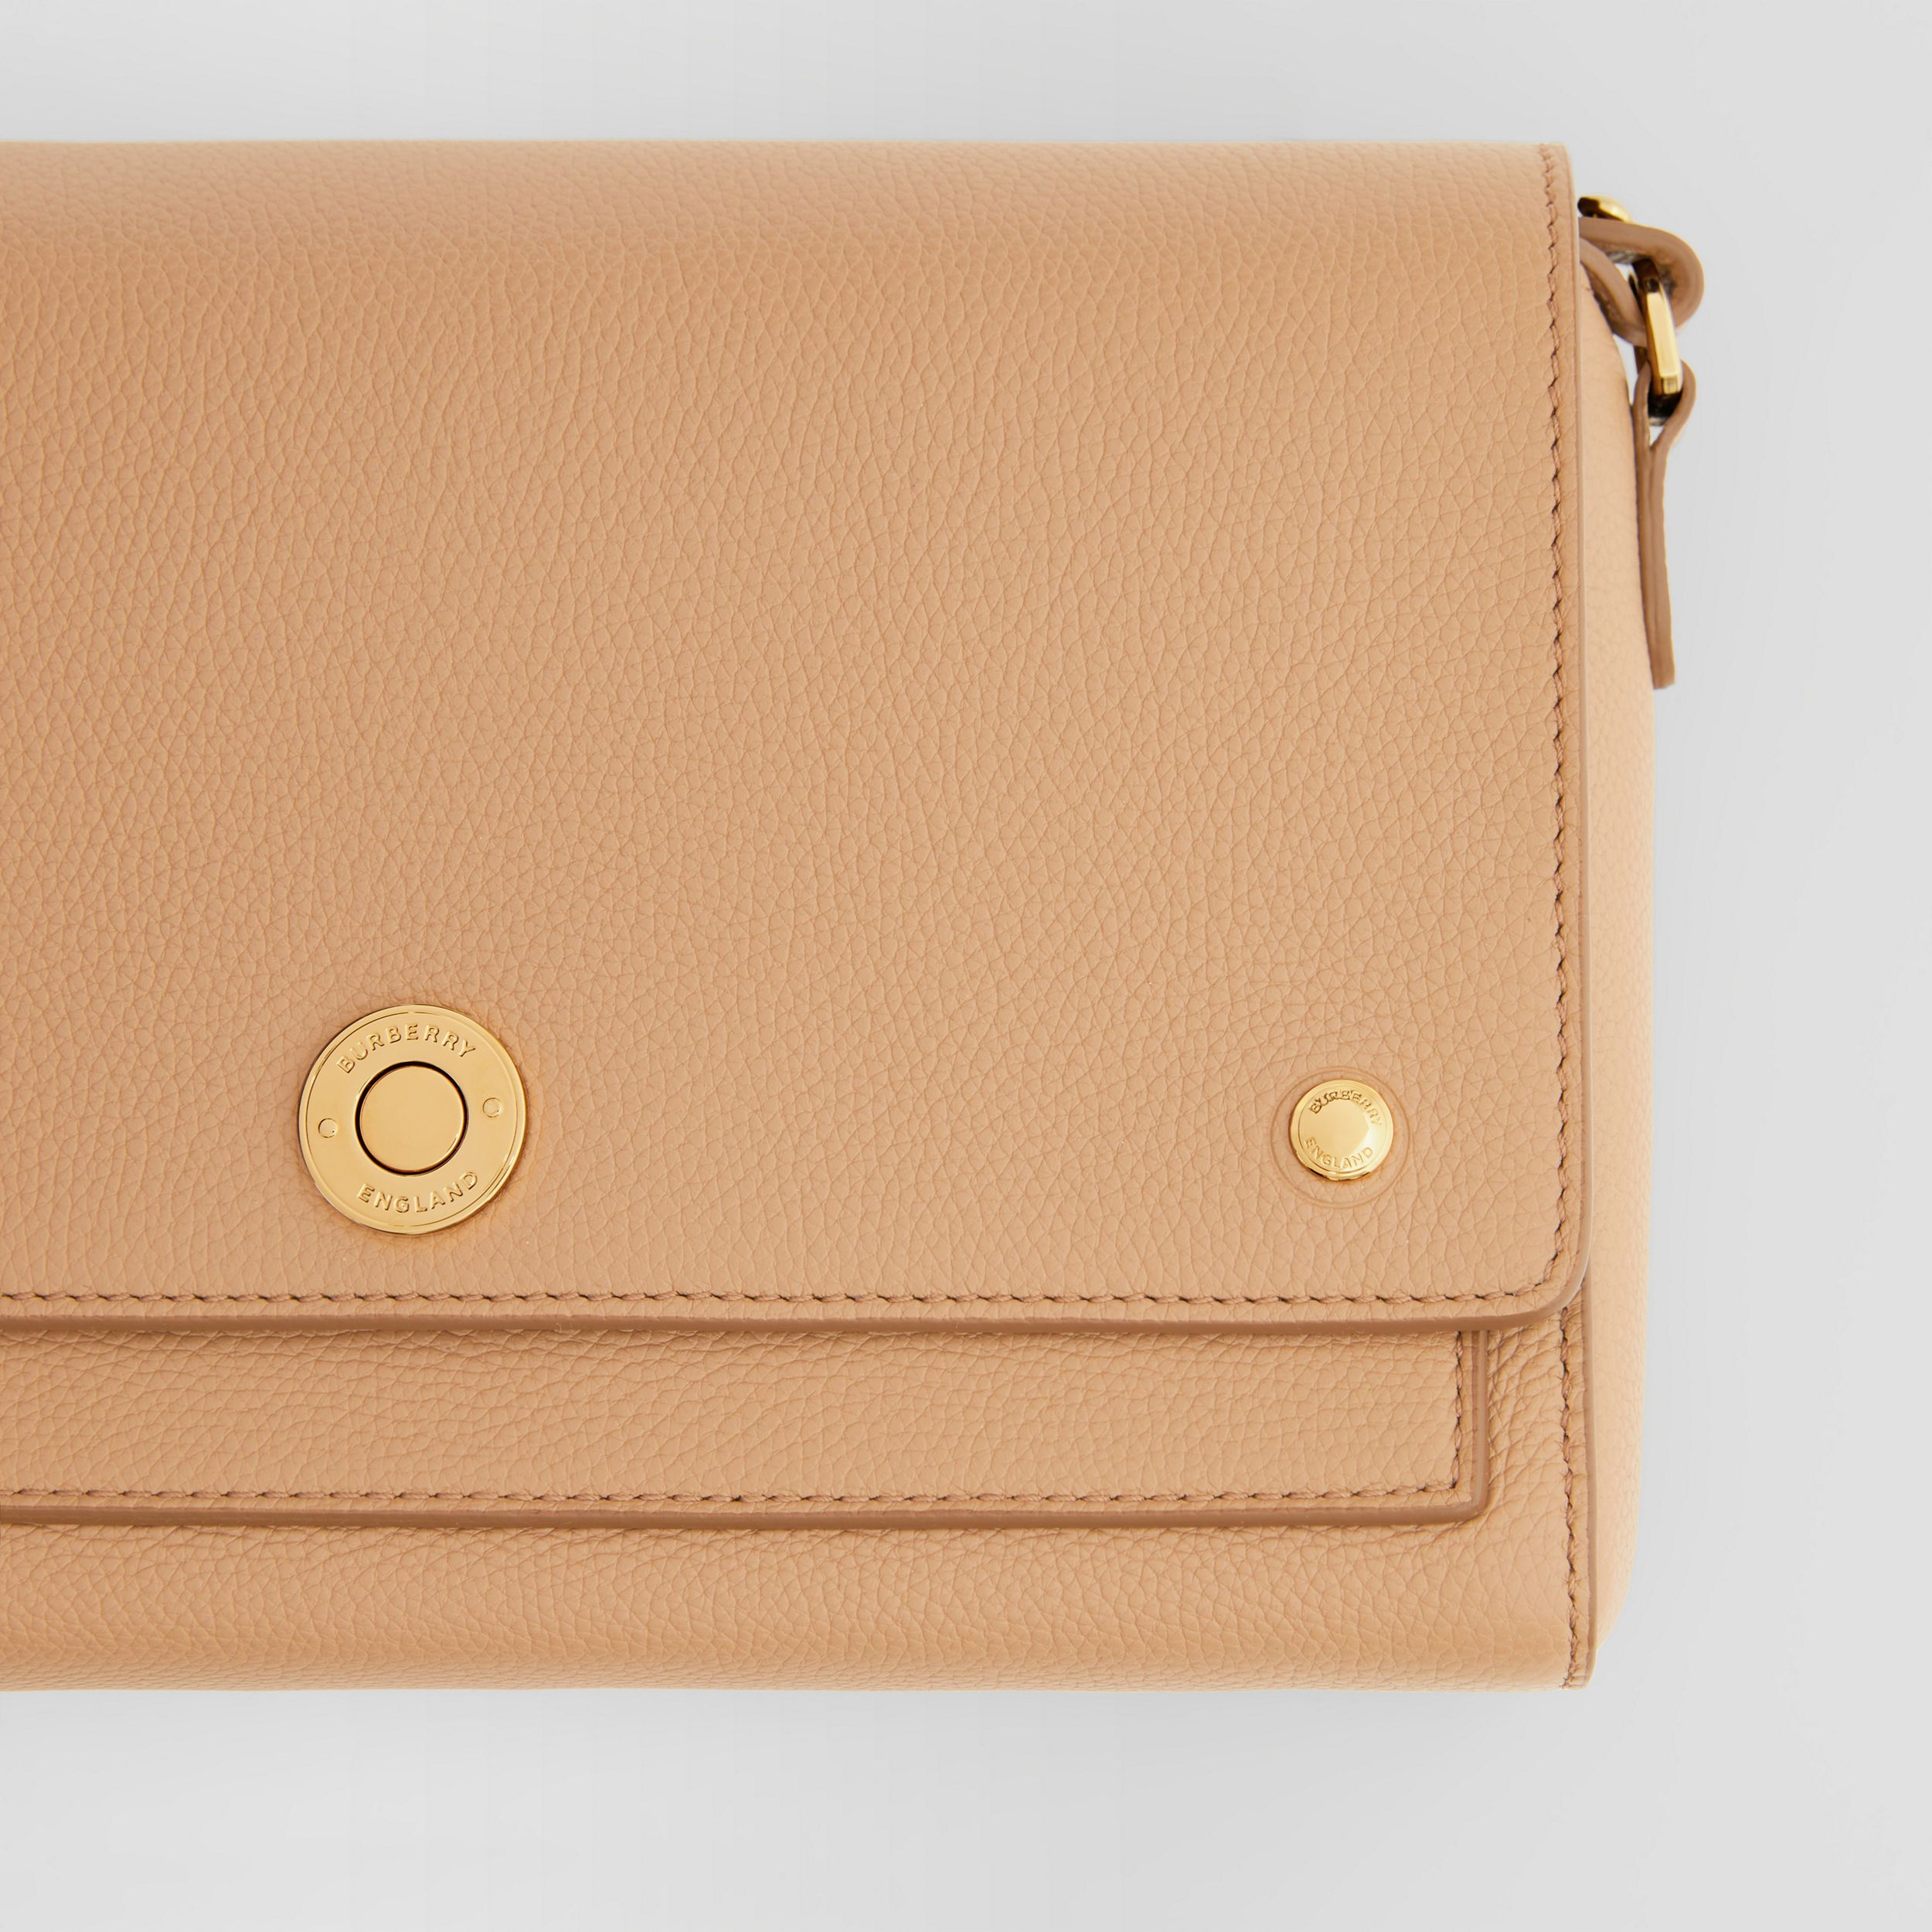 Grainy Leather Note Crossbody Bag in Camel - Women | Burberry - 2